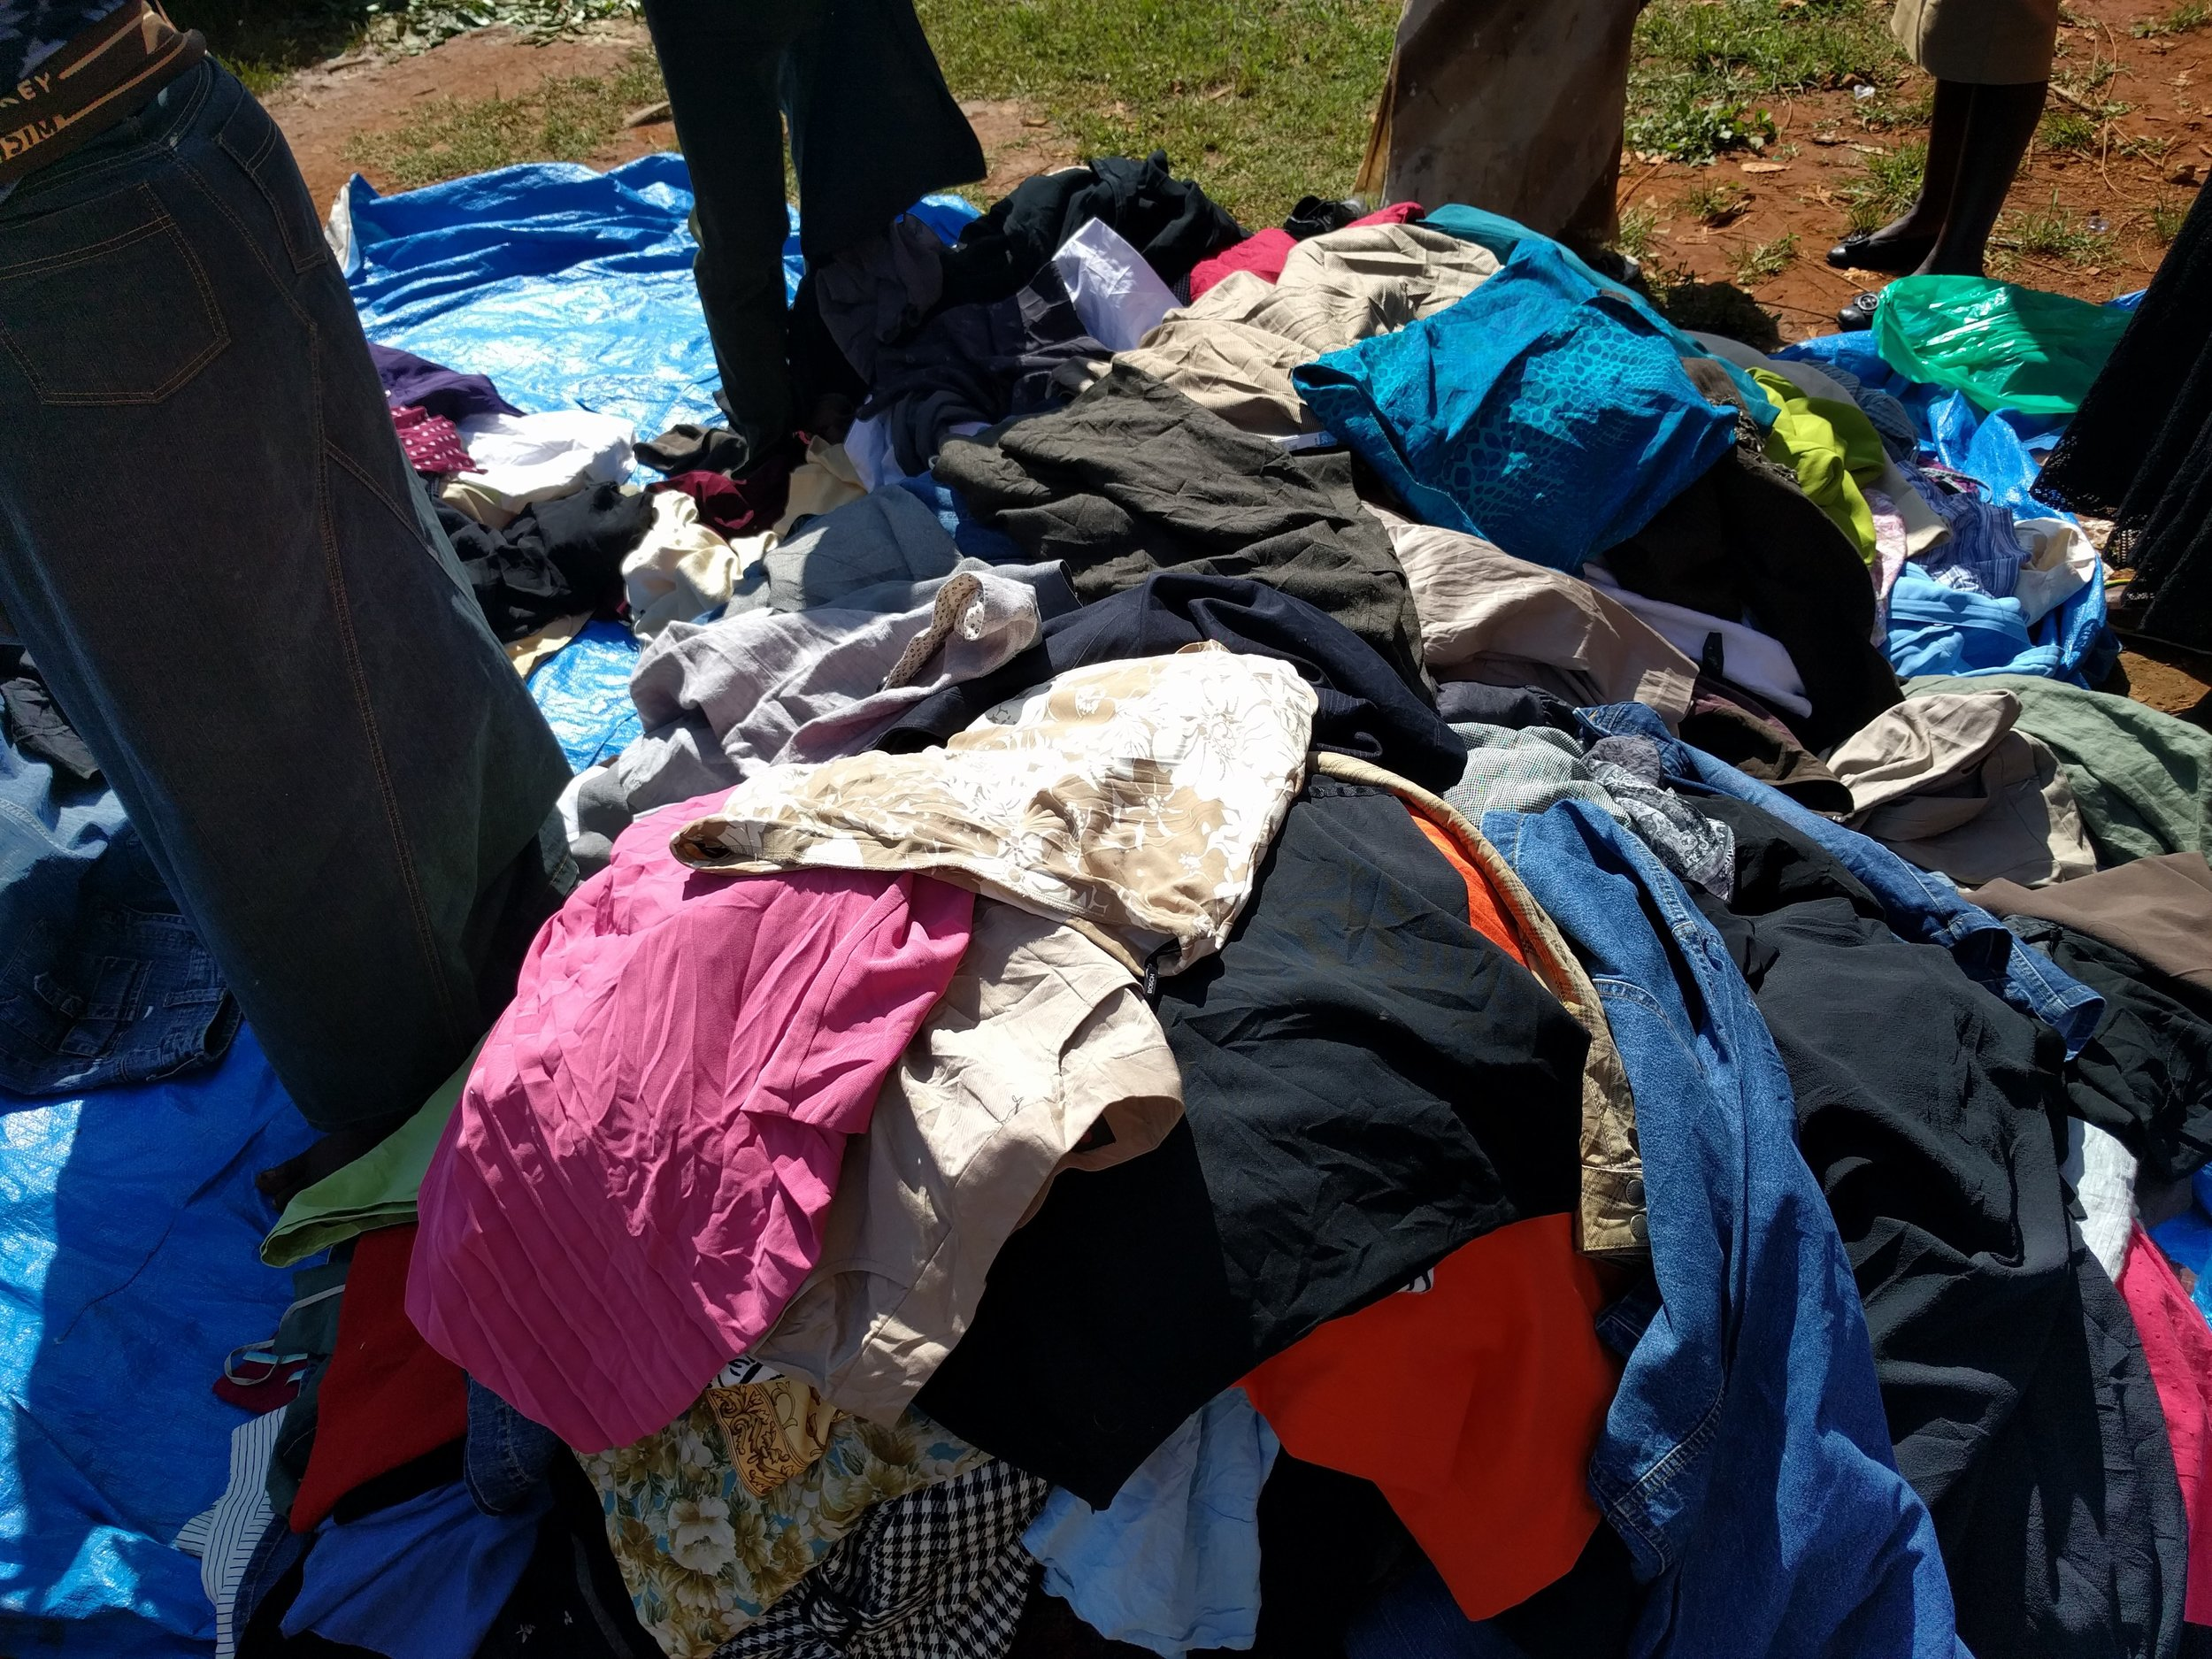 Market skirts all piled up to dig through